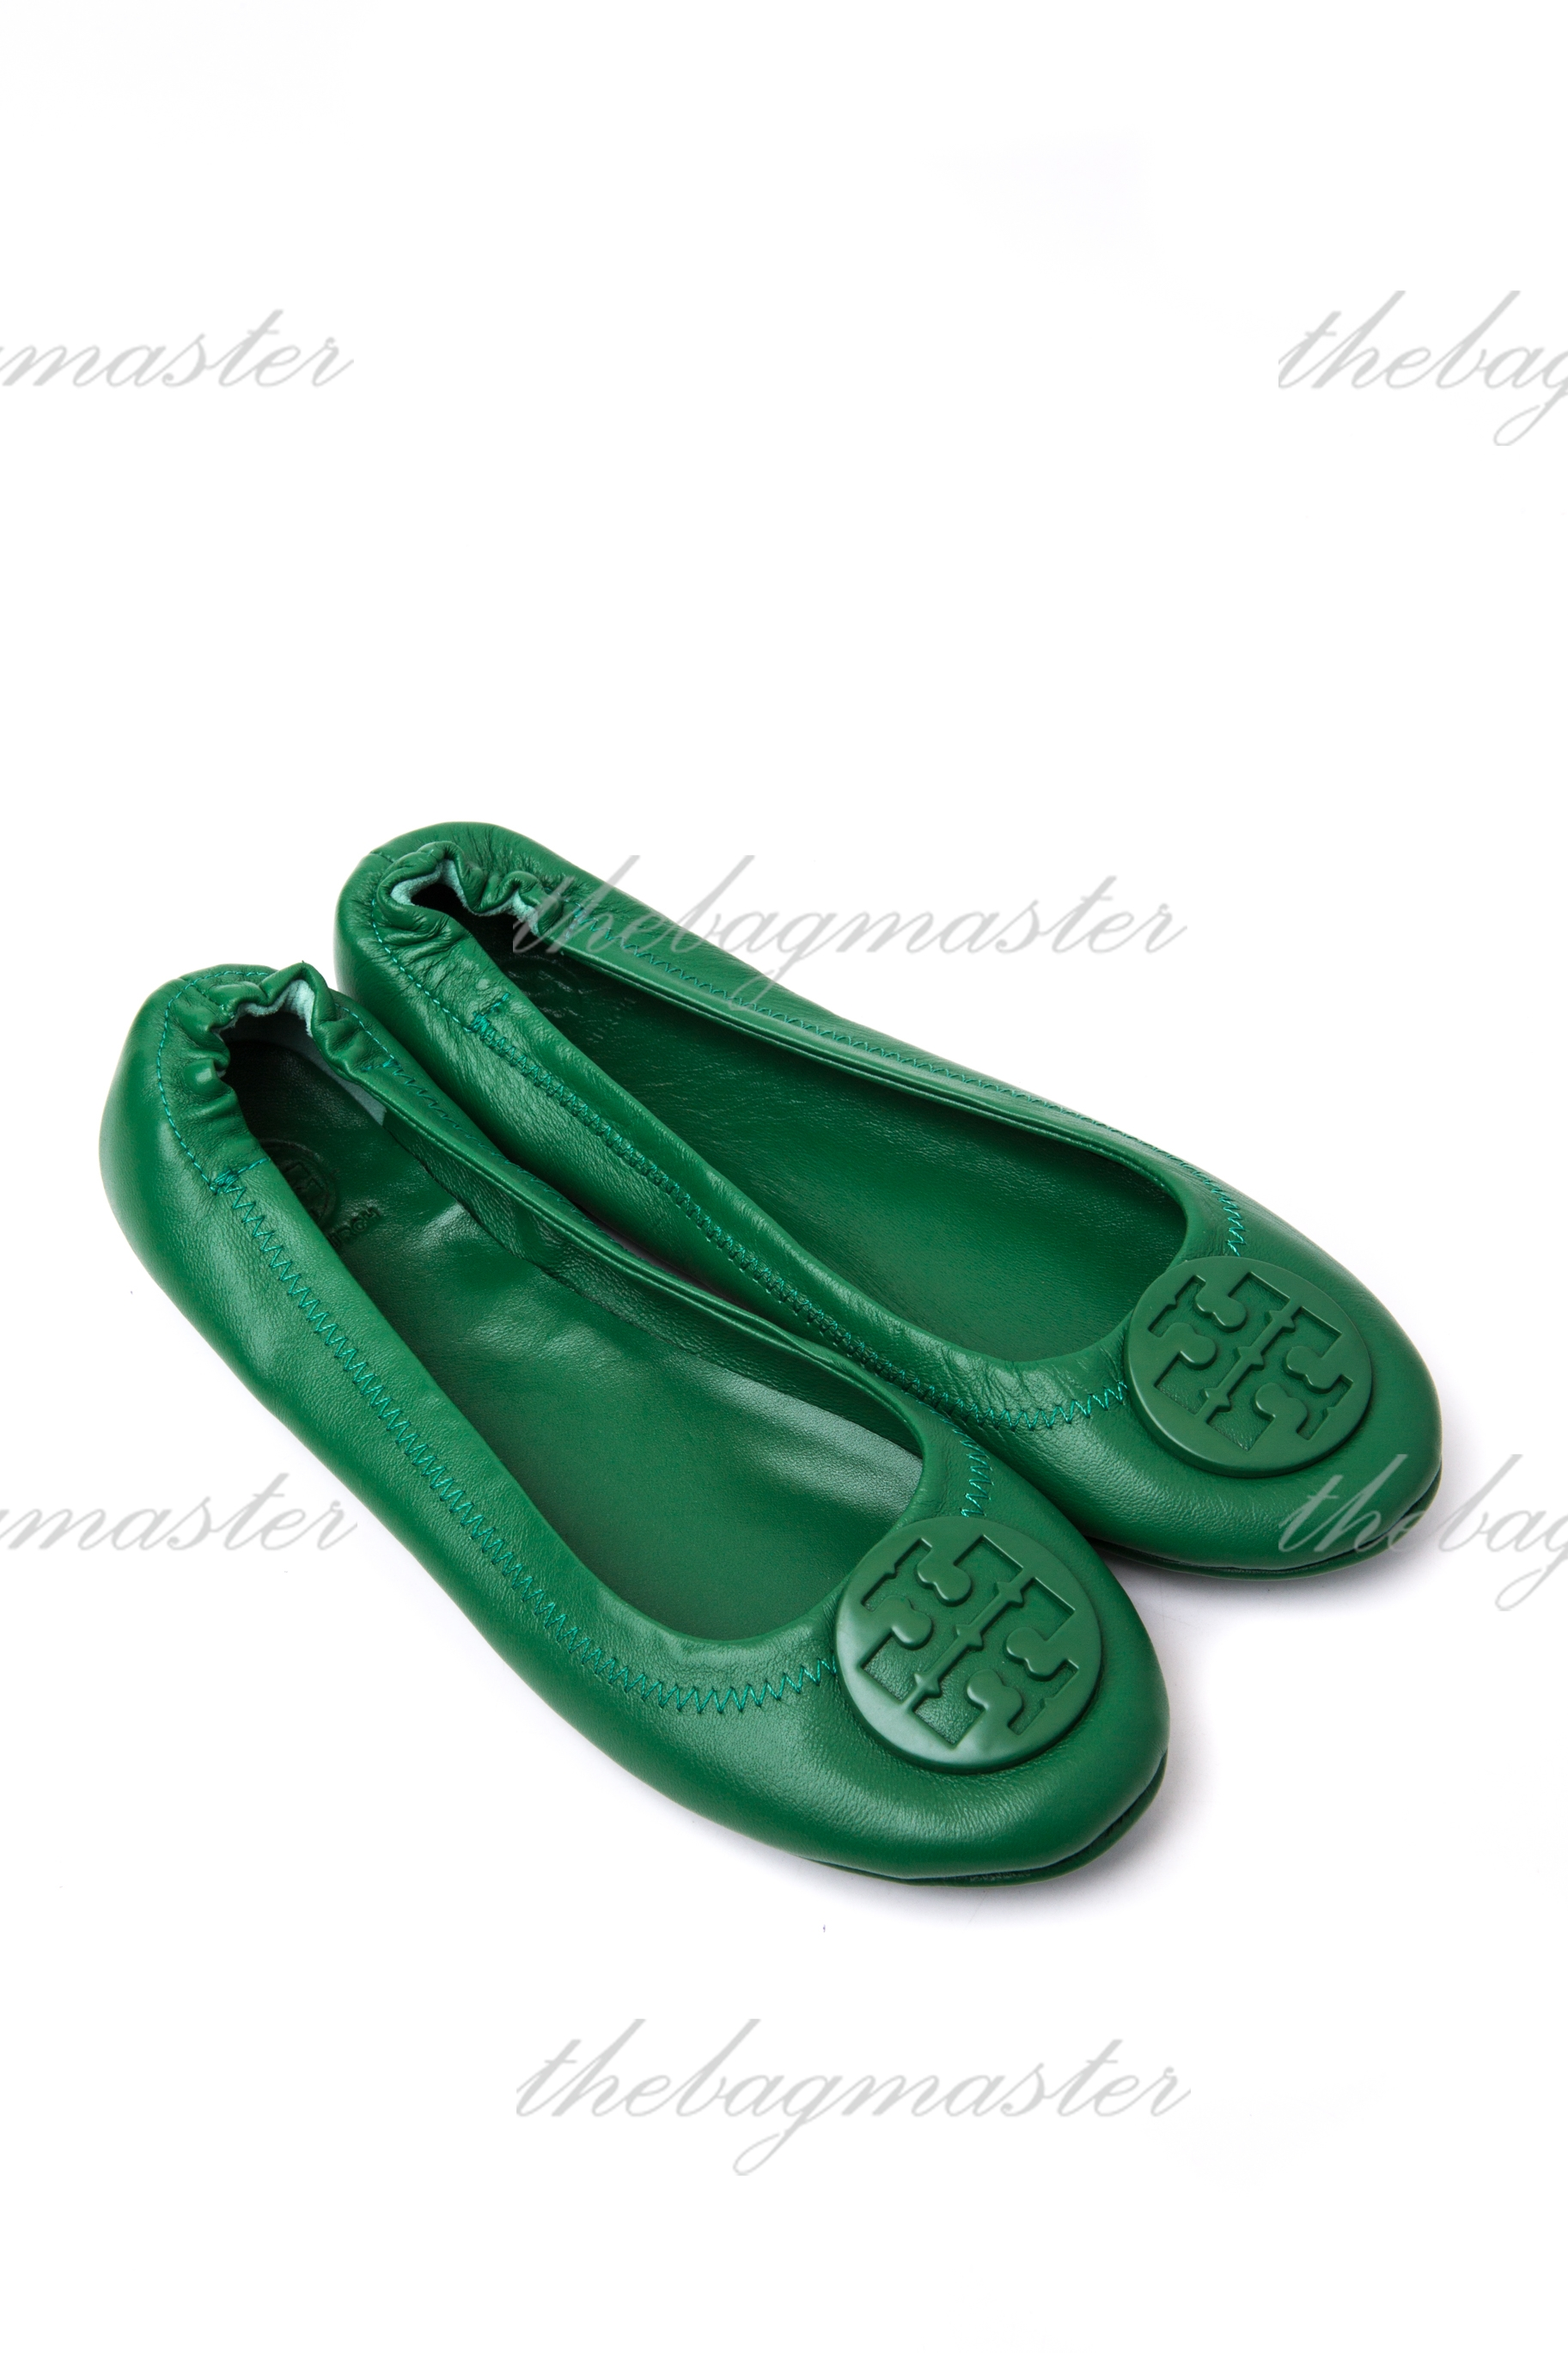 18ee3d092260 Tory Burch Minnie Travel Logo Ballerina Flat – Emerald green (Size 9 ...